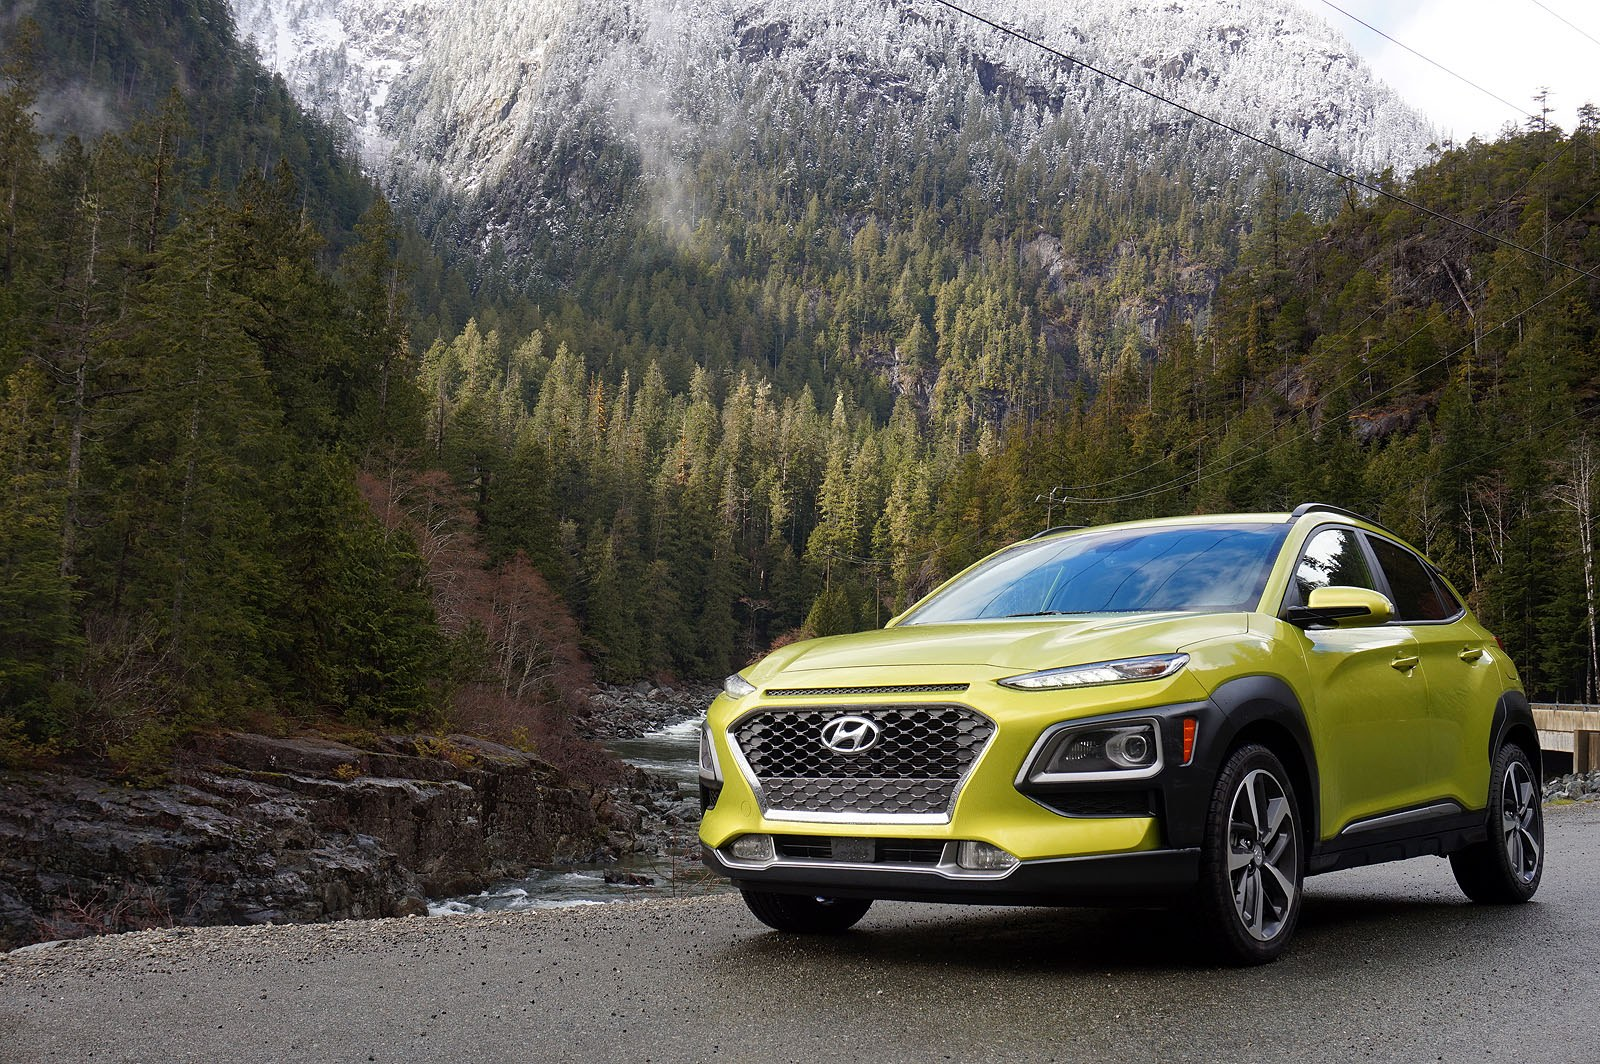 2018 Hyundai Kona Review-LAI-043